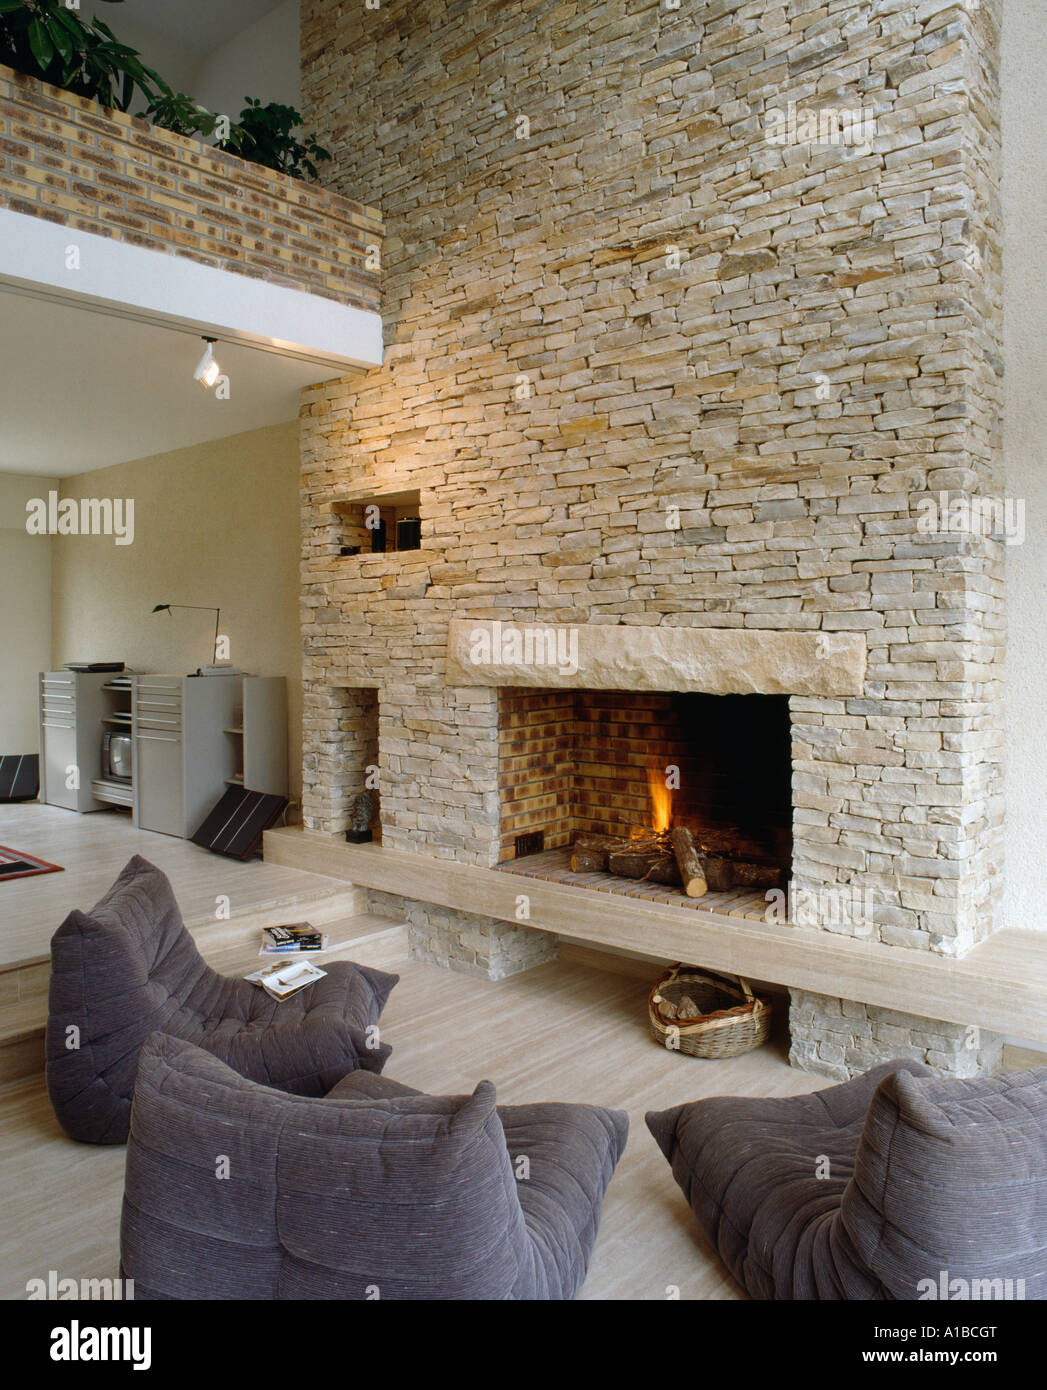 Lit Fire In Fireplace Stone Wall Of Barn Conversion With Modern Grey Armchairs